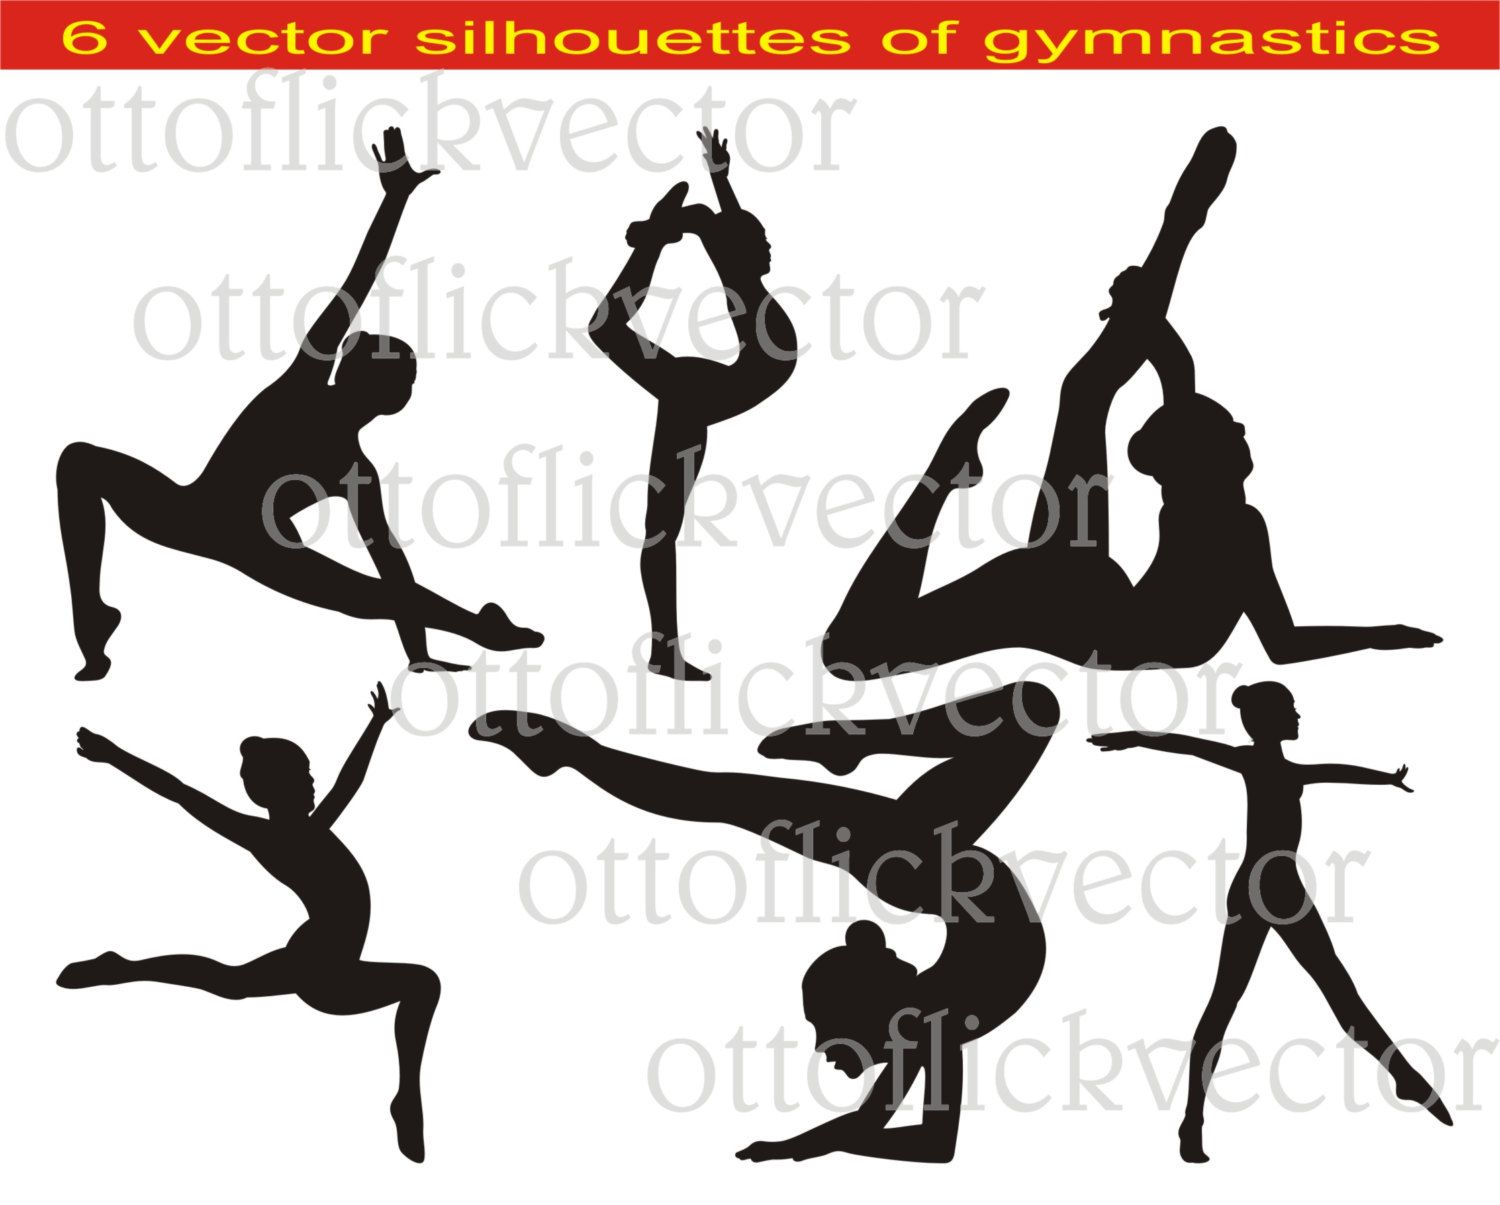 GYMNASTIC SILHOUETTES VECTOR clipart eps, ai, cdr, png, jpg ...